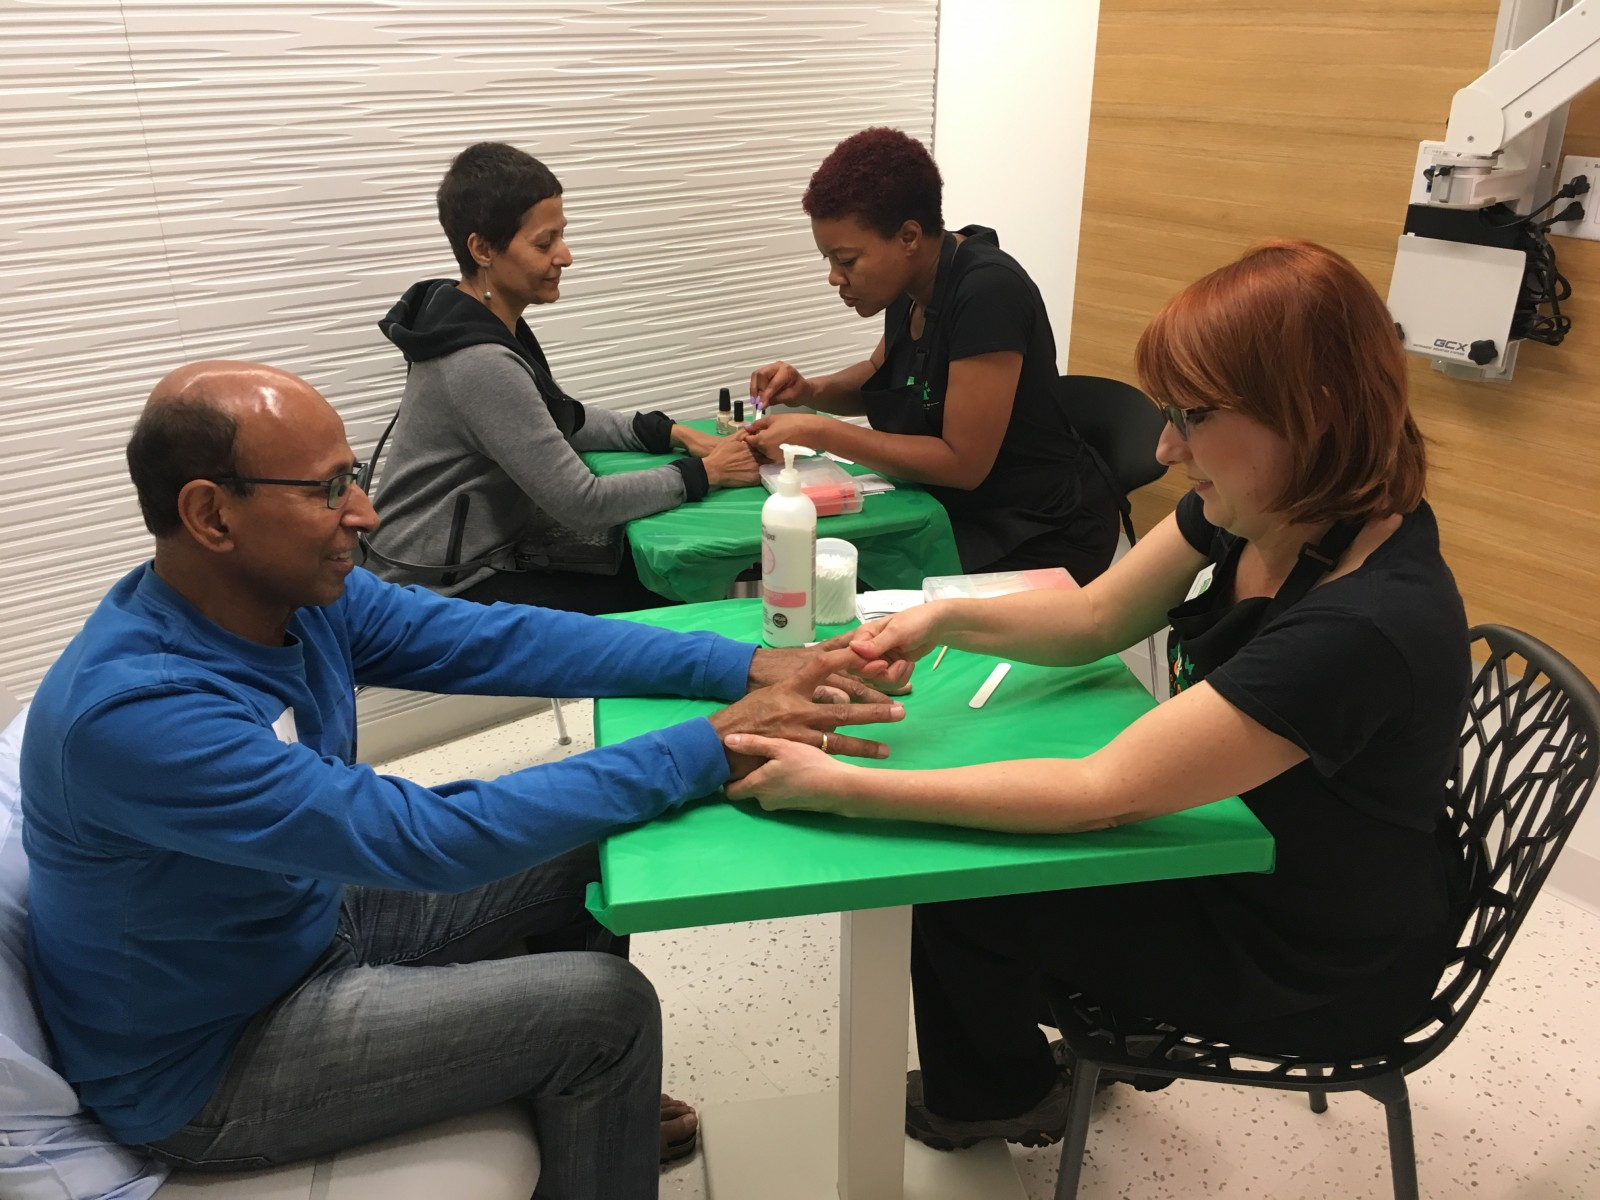 Patient Lakshmi Subramanian and her husband, Bala Subramanian, enjoy free manicures at Beauty Bus event at Cedars-Sinai The Angeles Clinic & Research Institute. Photo by Cedars-Sinai.